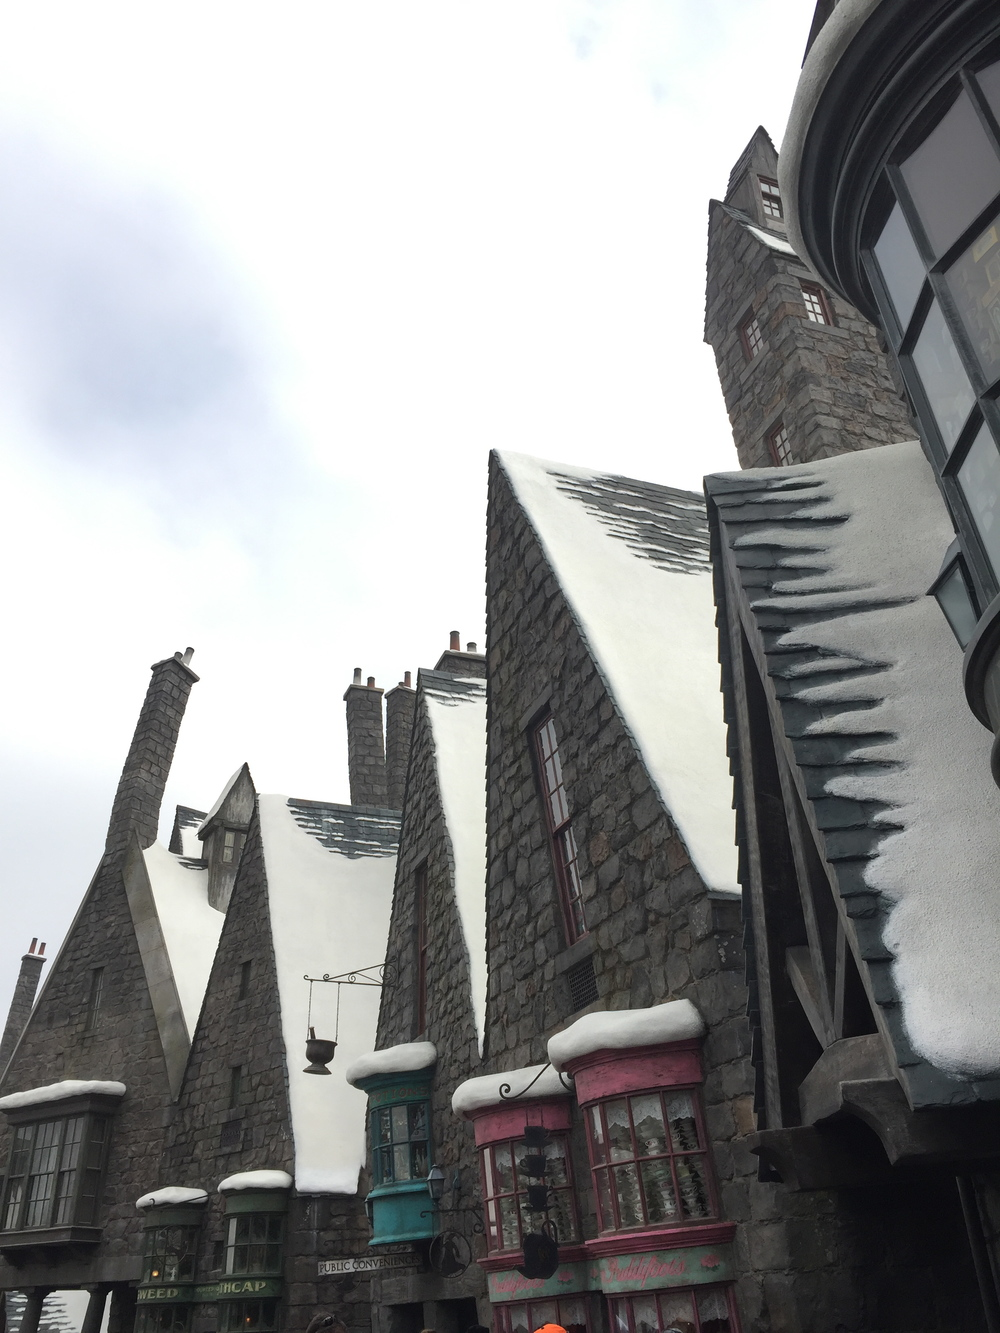 harrypotterworldhollywood_37.jpg